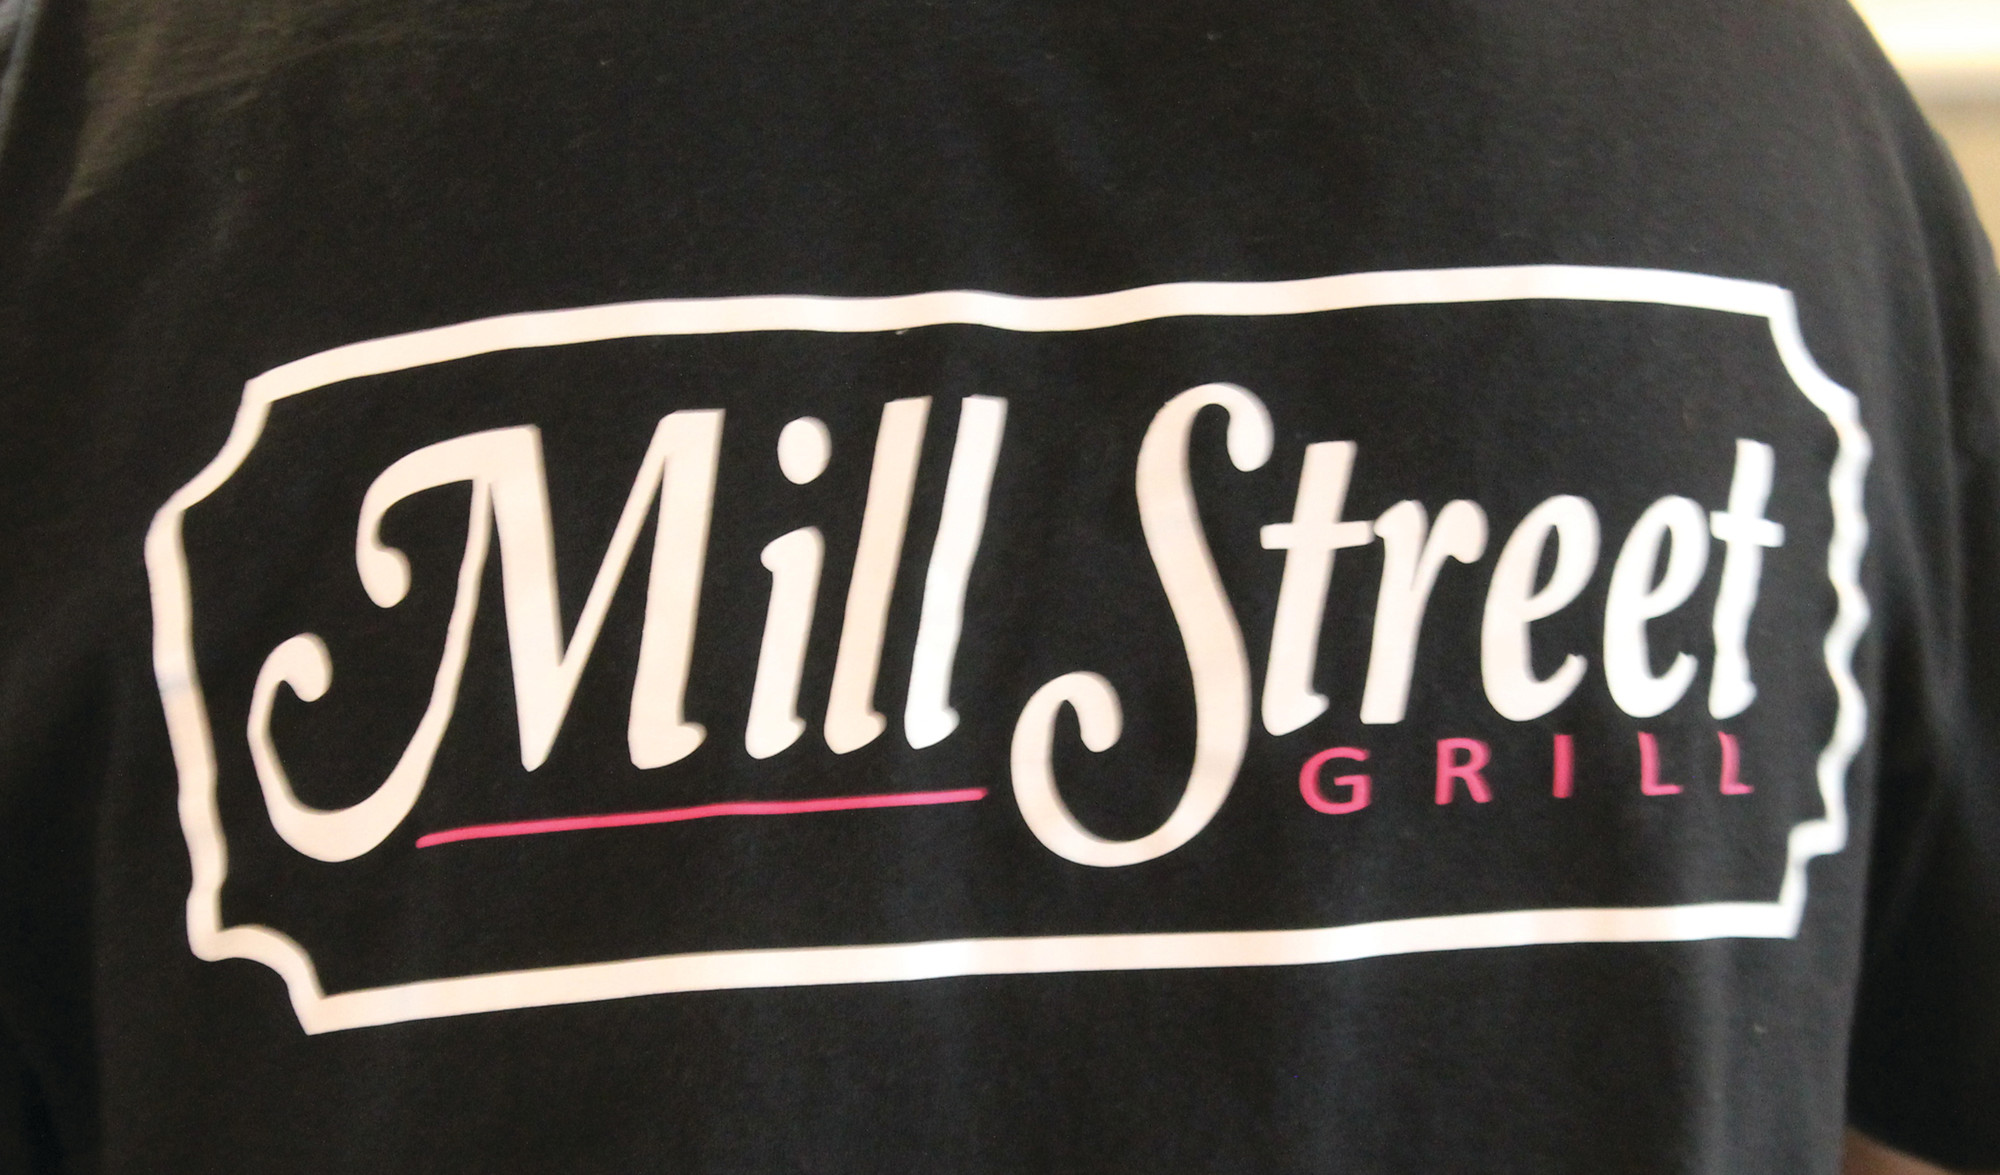 The Mill Street Grill at 201 S. Mill St. is Manning's newest restaurant. Open from 11 a.m. to 9 p.m. Monday through Thursday and 11 a.m. until 10 p.m. Friday and Saturday, the restaurant will begin opening from 11 a.m. until 3 p.m. on Sunday beginning July 22.